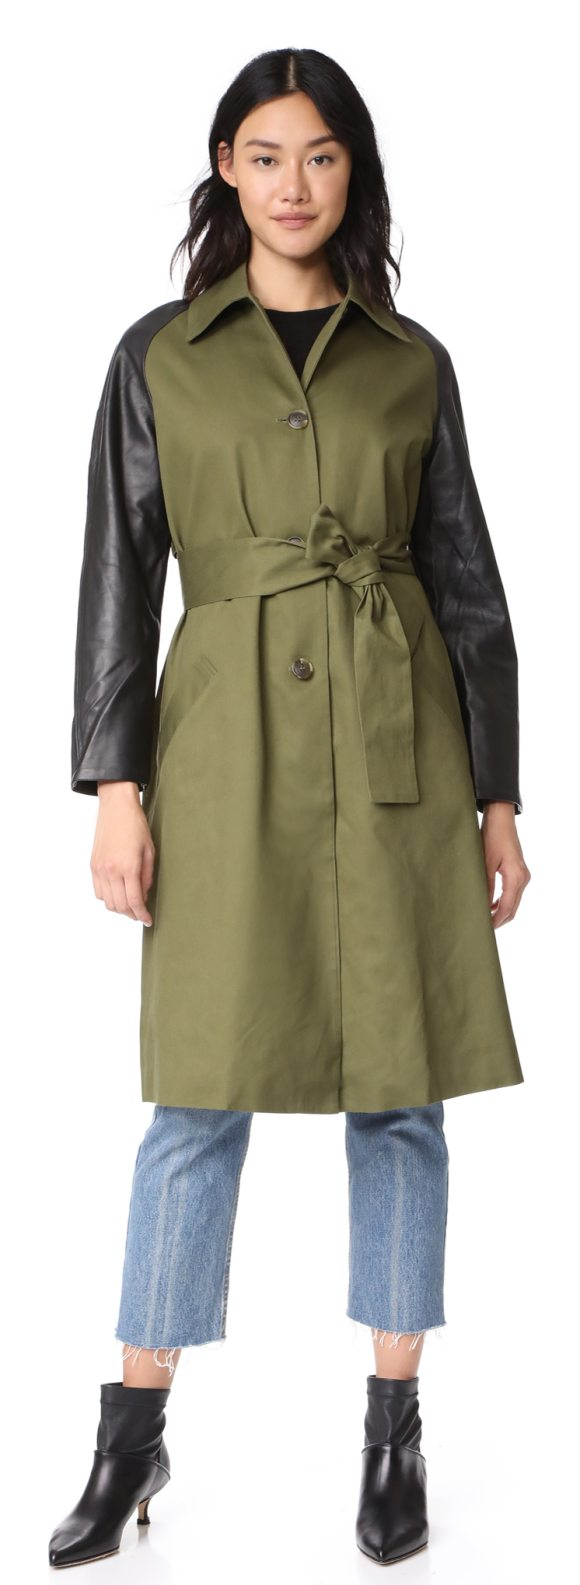 VEDA army trench coat - Exclusive to Shopbop. A military-inspired VEDA coat...